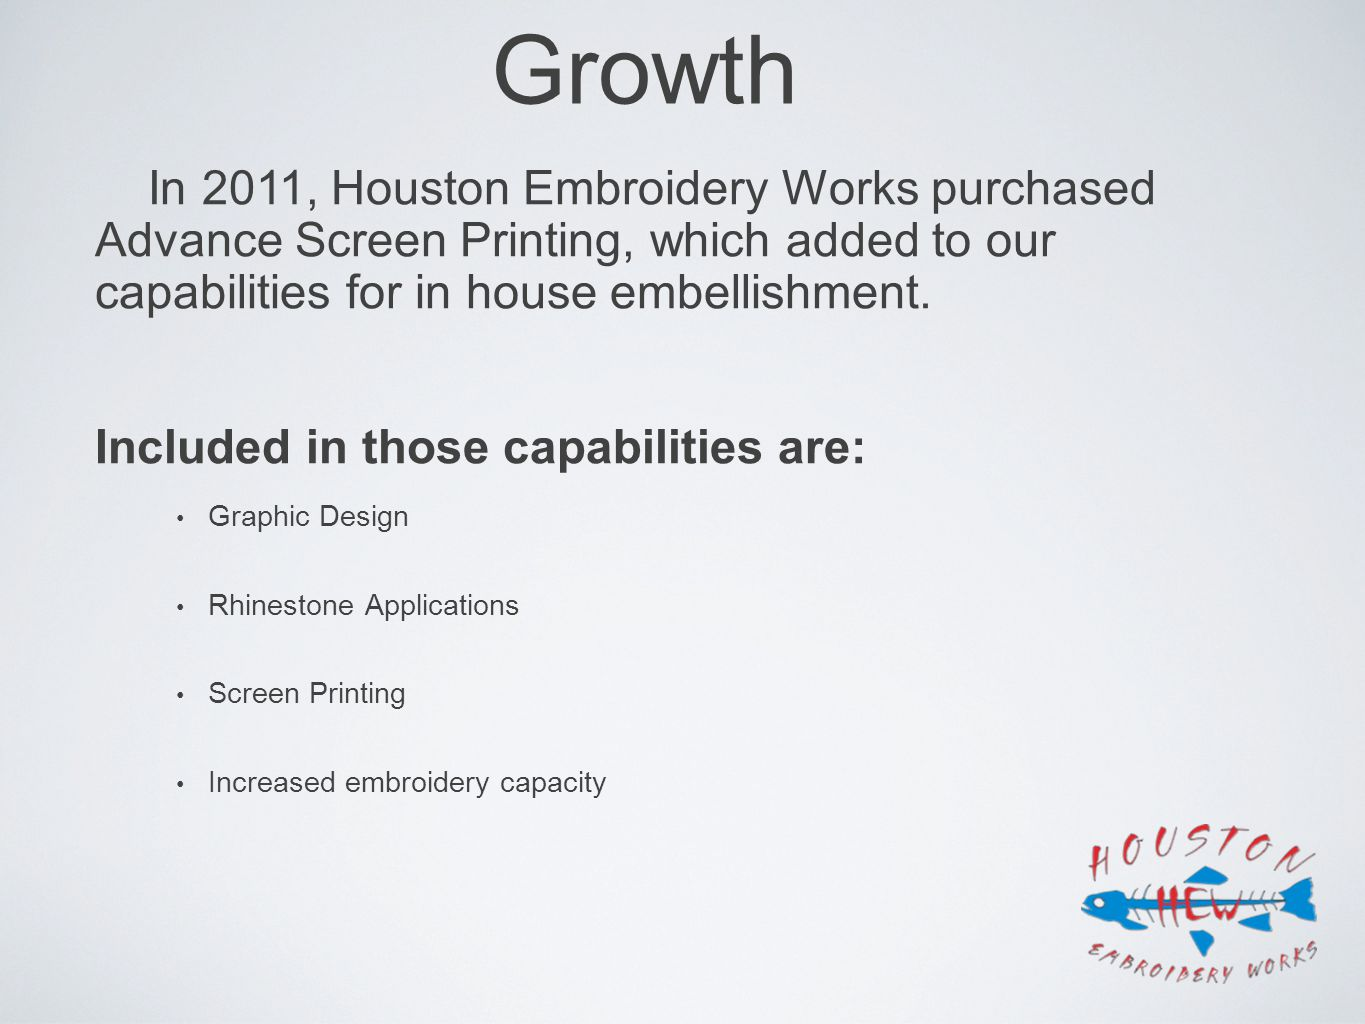 Growth In 2011, Houston Embroidery Works purchased Advance Screen Printing, which added to our capabilities for in house embellishment.